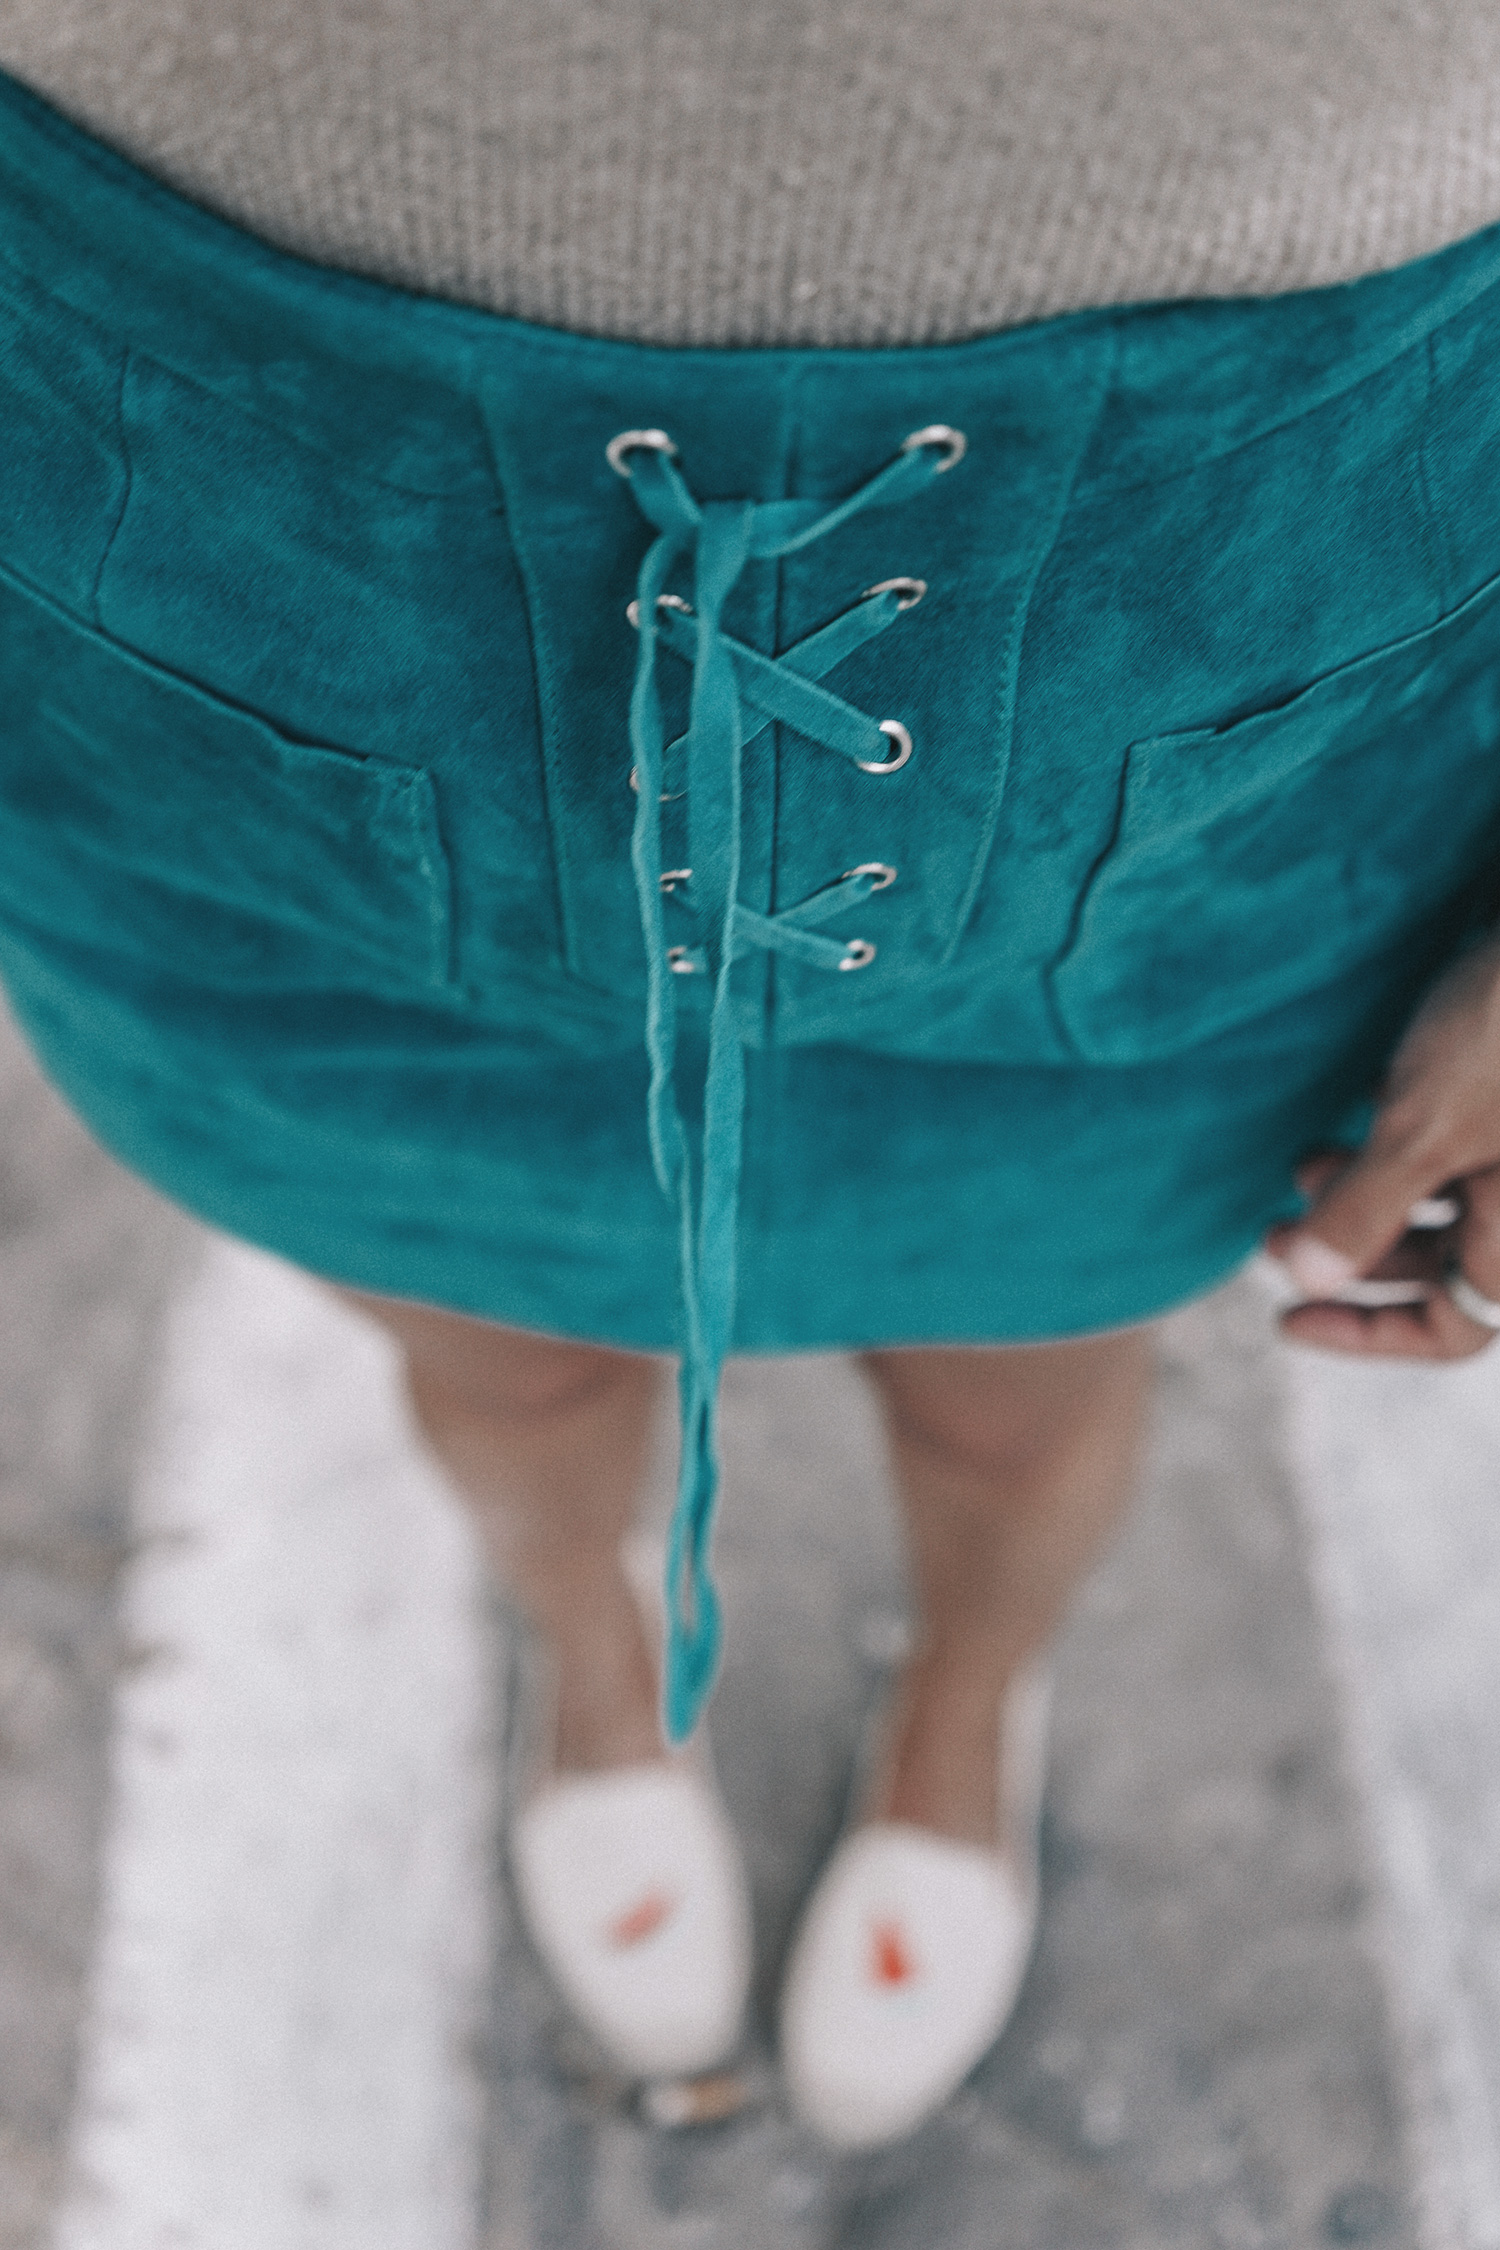 Gold_Top-Metallic_Trend-Suede_Skirt-Turquoise_Skirt-Soludos_Espadrilles-Soludos_Escapes-Mykonos-Greece-Collage_Vintage-Street_Style-118